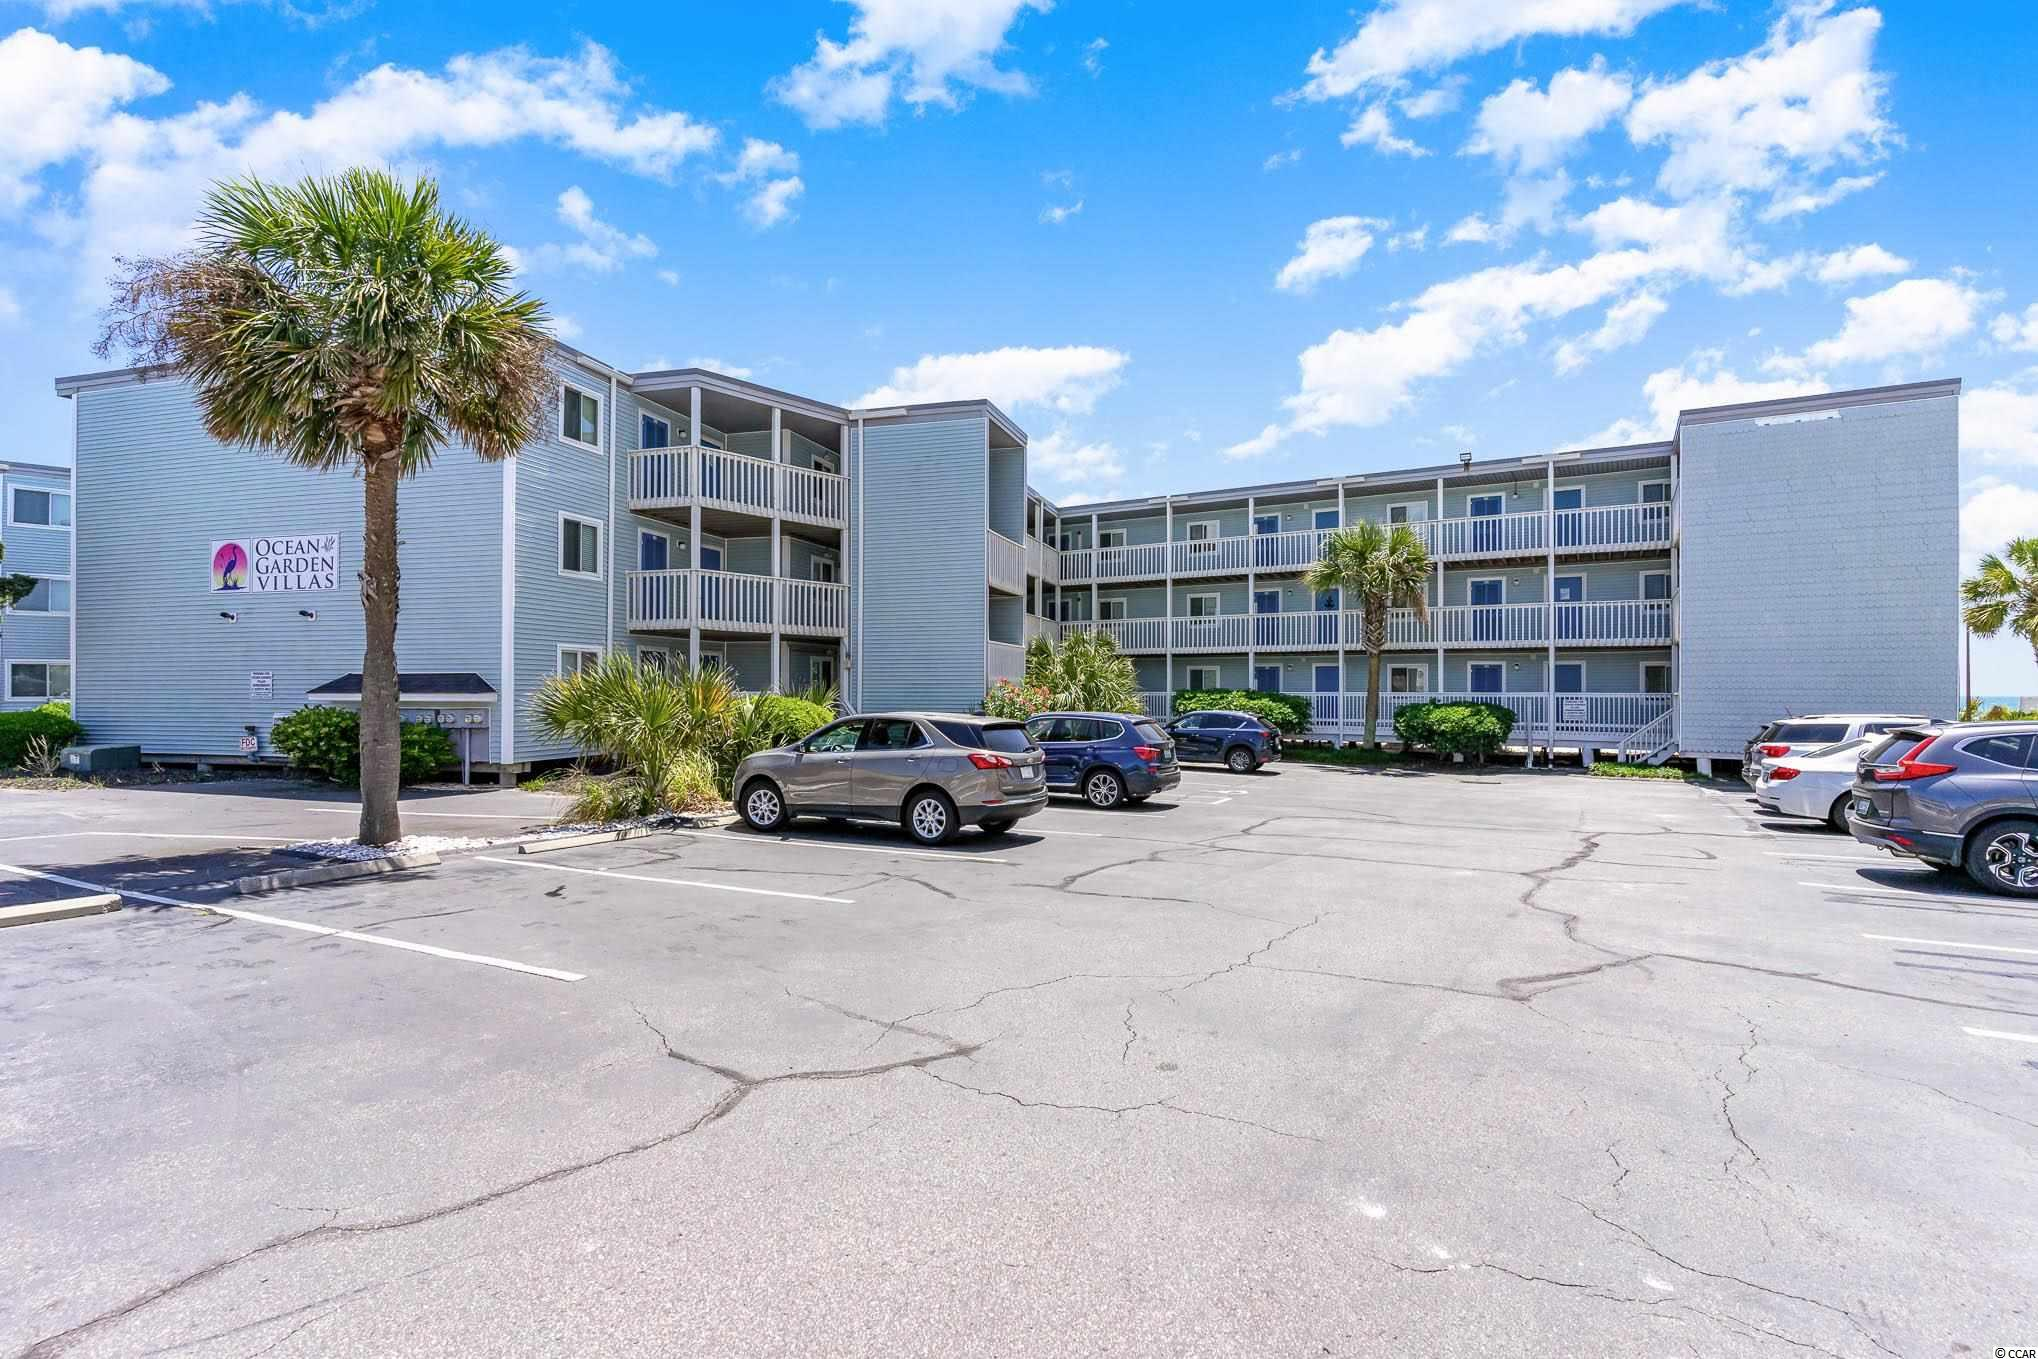 Top floor, oceanfront, move-in ready 2 bedroom, 2 bath condo located in the Crescent Beach section of North Myrtle Beach.  This unit has been very well maintained and has many new upgrades.  The HVAC was replaced in 2019, all new stainless steel appliances in 2019, three new flat screen tv's in 2019, water heater replaced in 2020, washer and dryer replaced in 2020, new living room furniture 2020.  The condo offers ceramic tile throughout, recent paint, and granite in the kitchen.  Very clean and ready for a new owner to enjoy! Ocean Garden Villa is located in close proximity to all of the most popular attractions, restaurants, shopping, and golf.